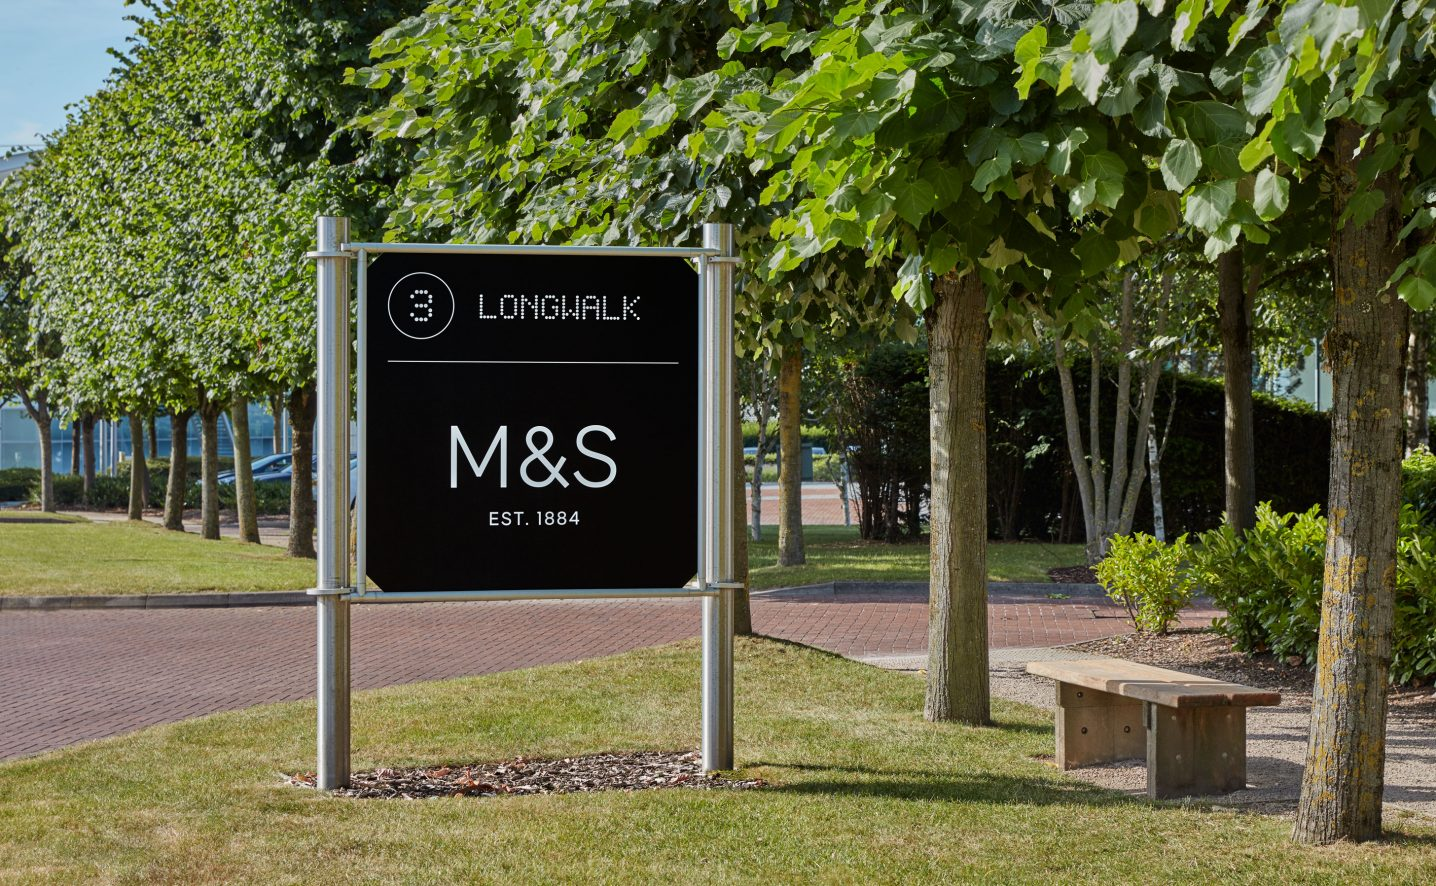 stockley-park-signage-3